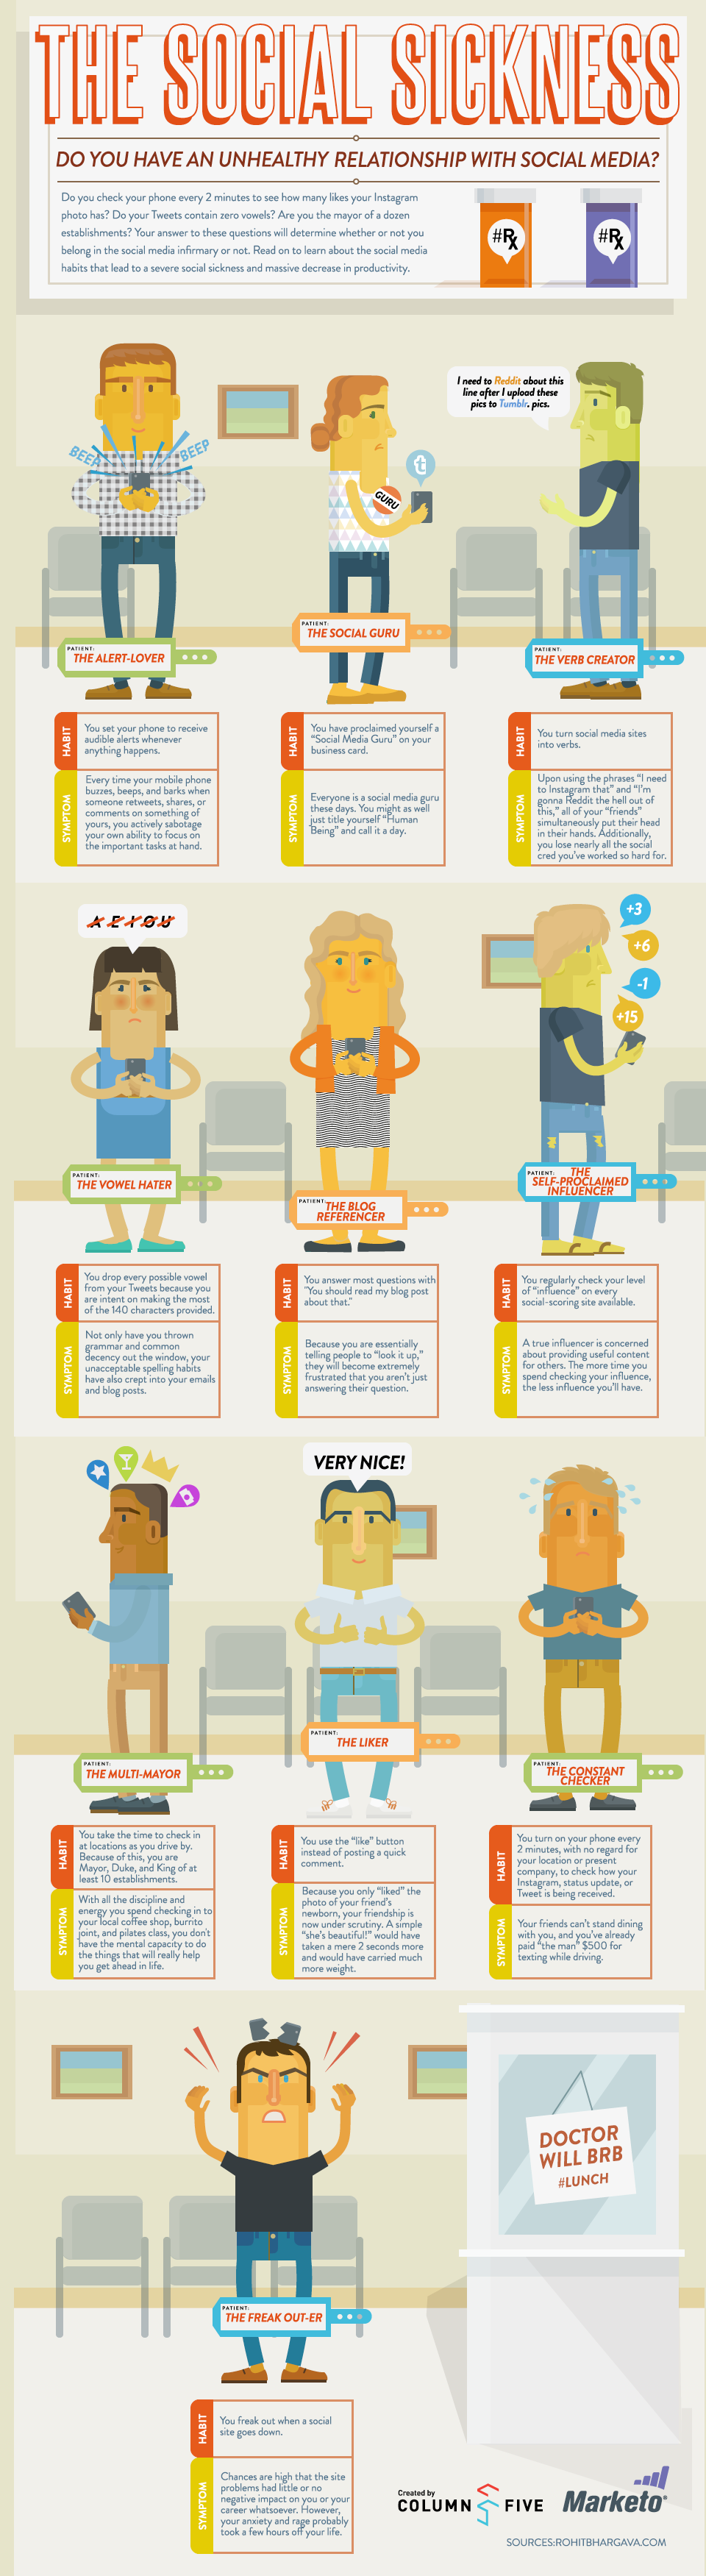 social-sickness-infographic1